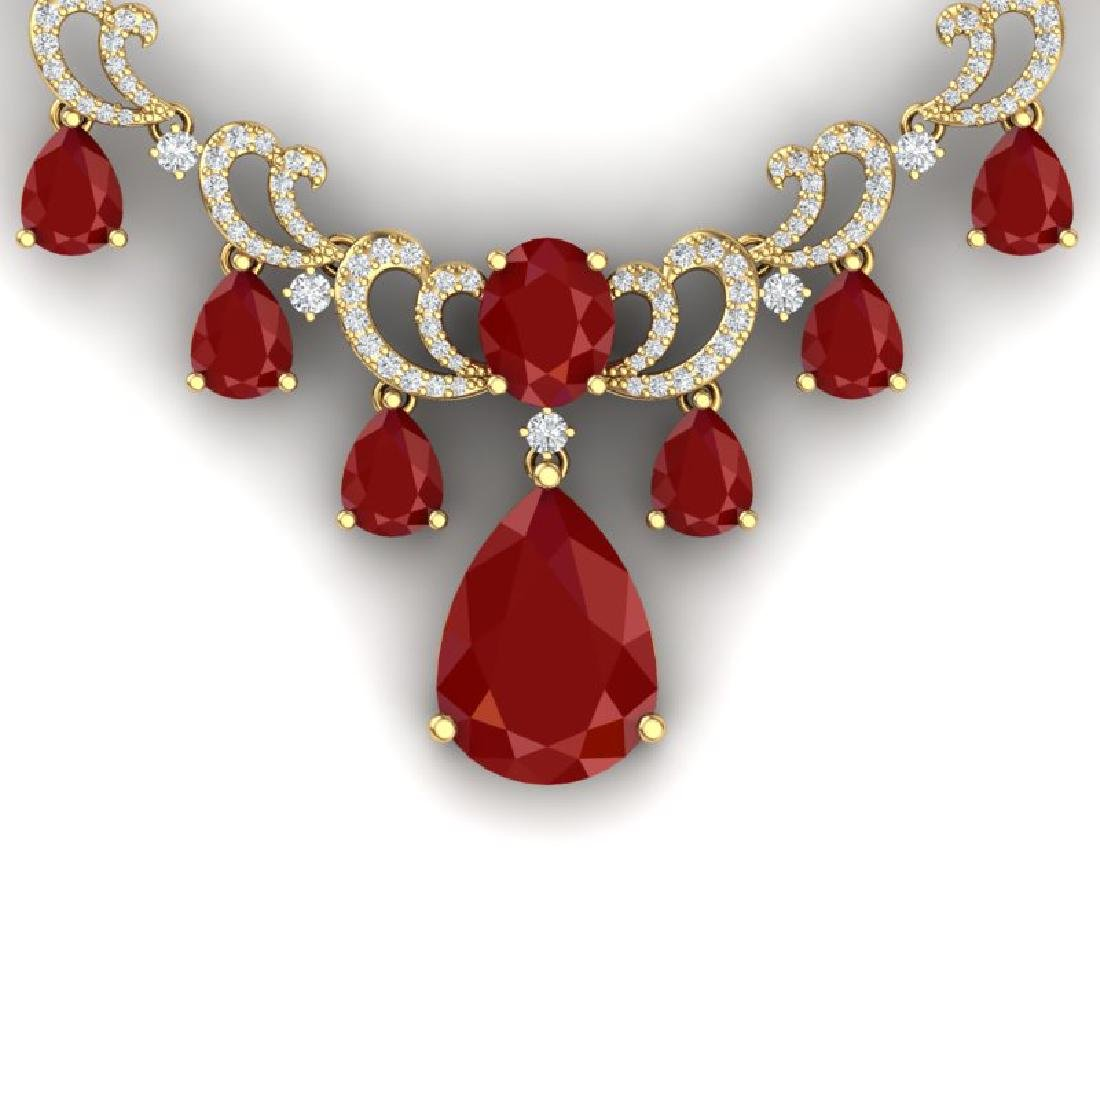 36.85 CTW Royalty Ruby & VS Diamond Necklace 18K Yellow